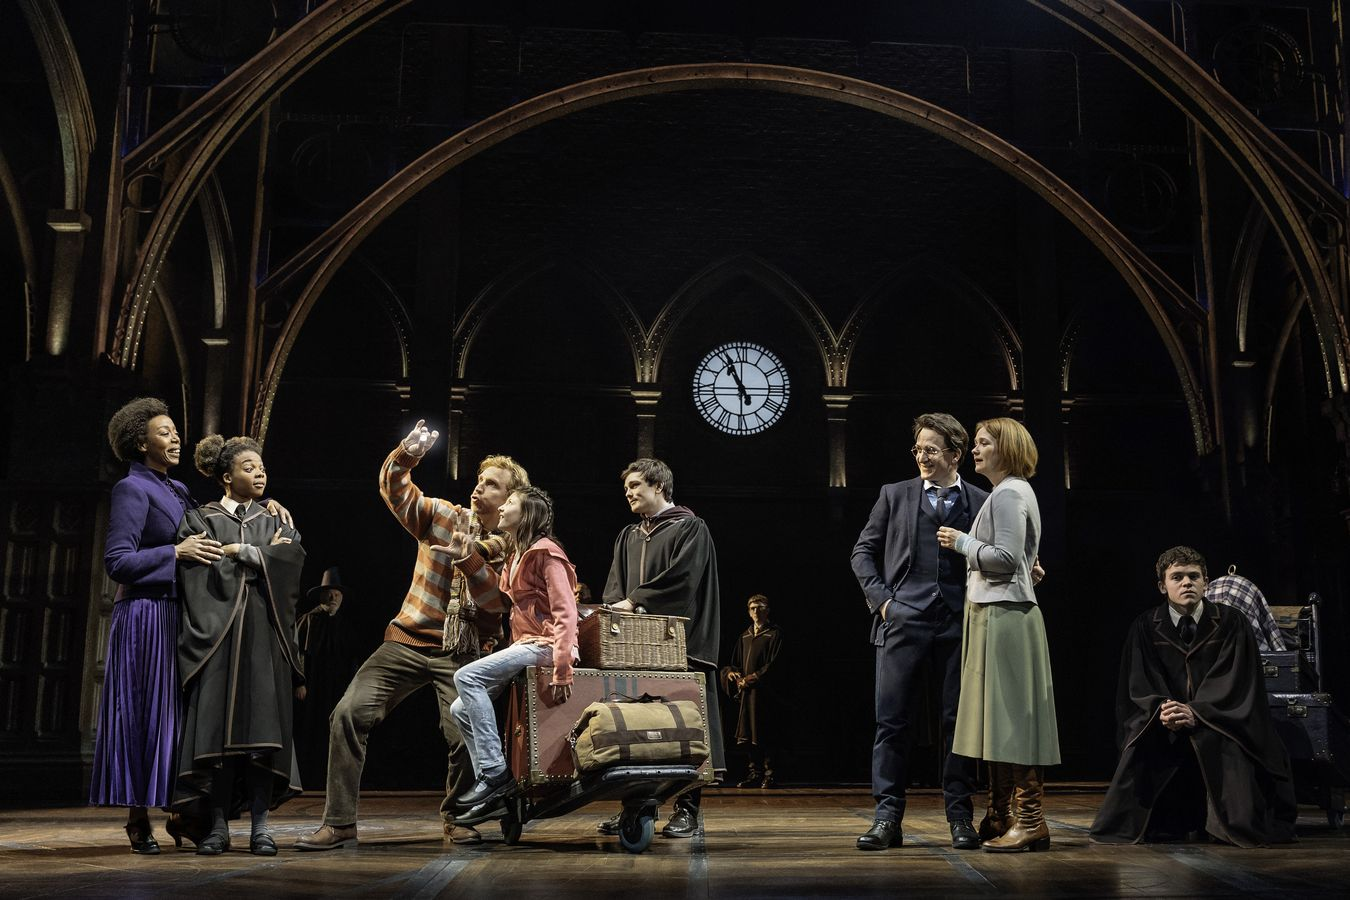 The Magical Story Continues with Harry Potter and the Cursed Child